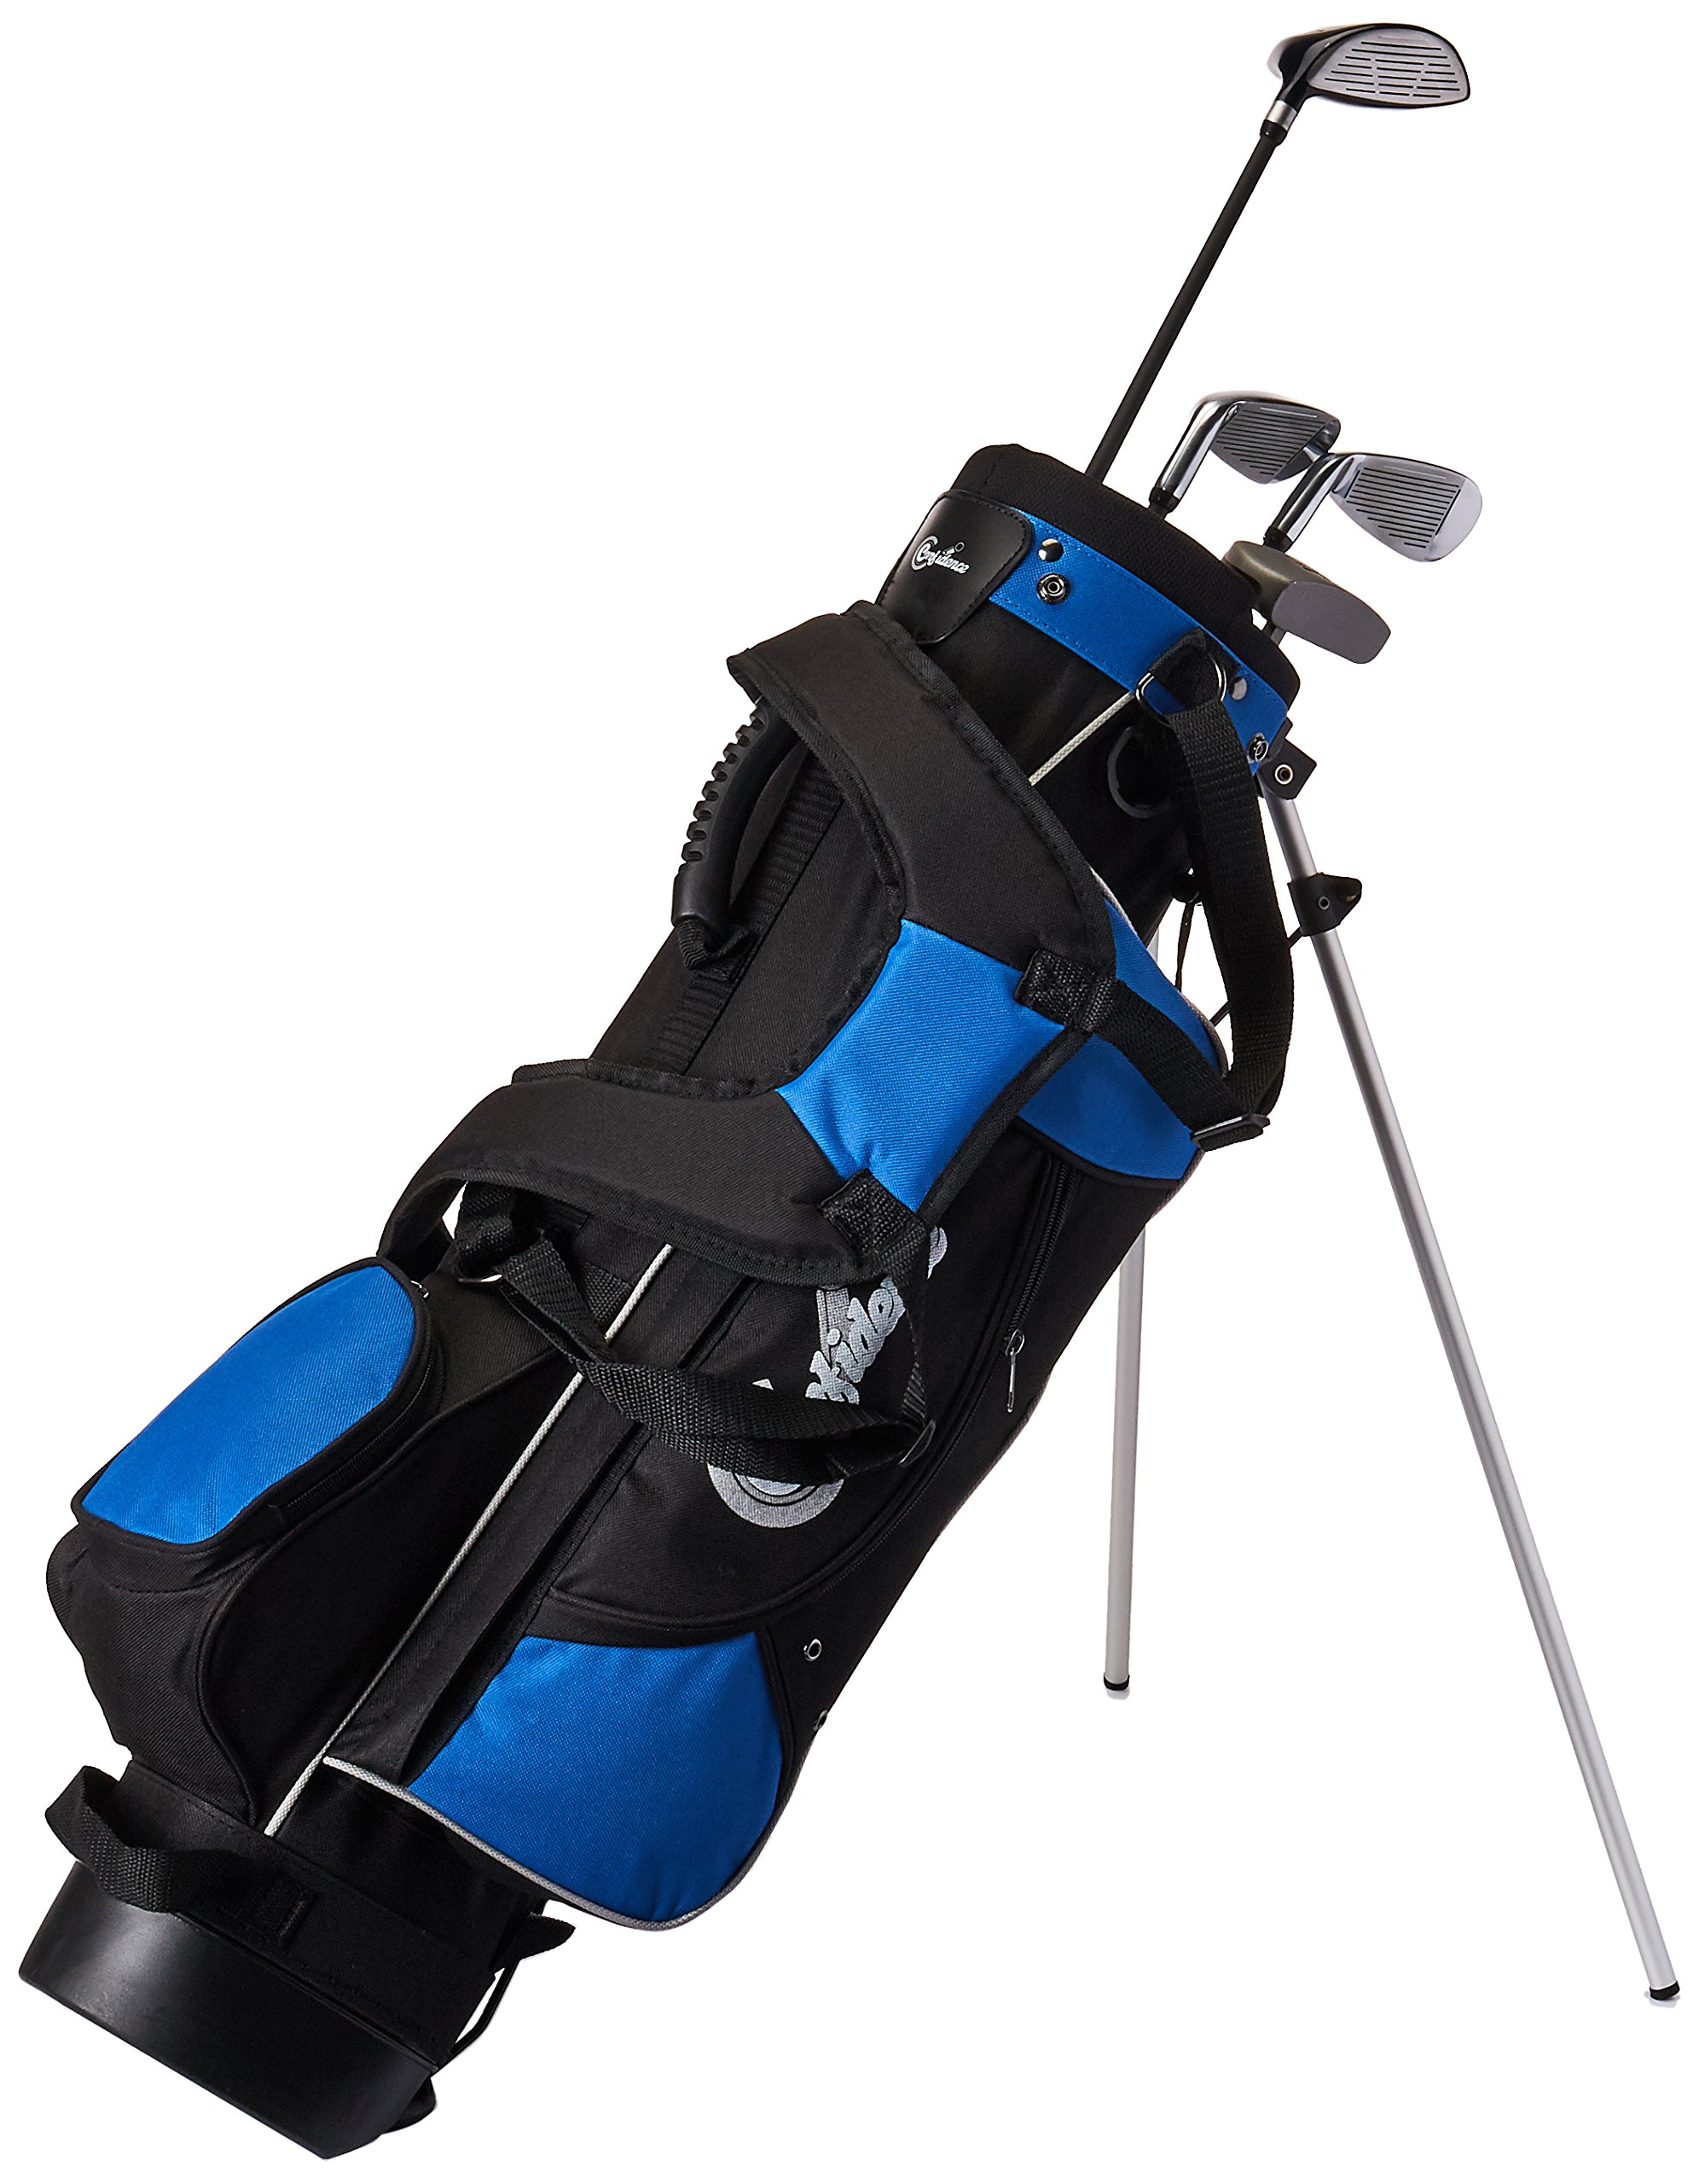 Confidence Junior Golf Club Set with Stand Bag (Right Hand, Ages 4-7) by Confidence